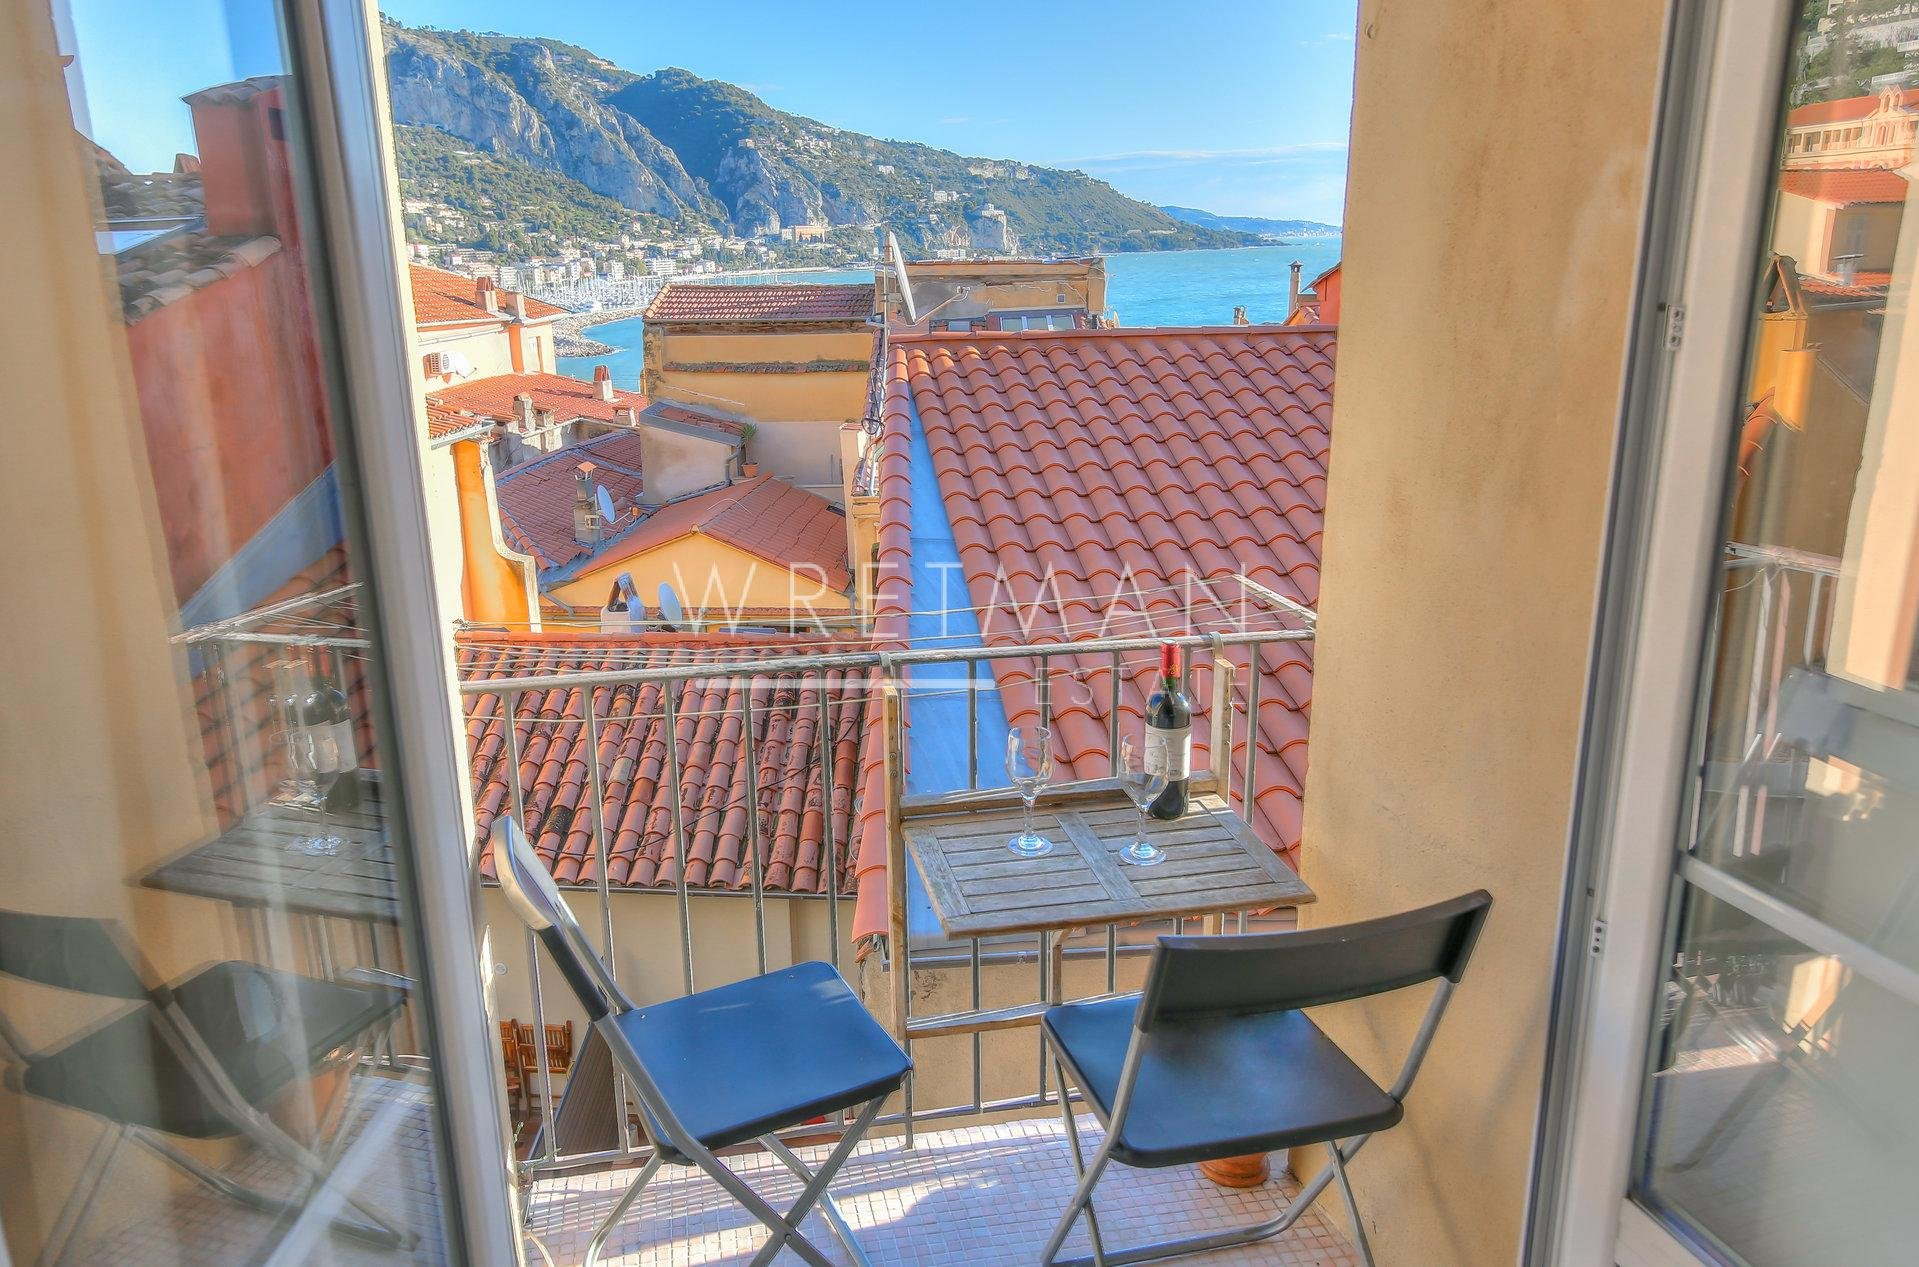 Beautiful and large studio flat with balcony and sea views - Menton Vieille Ville